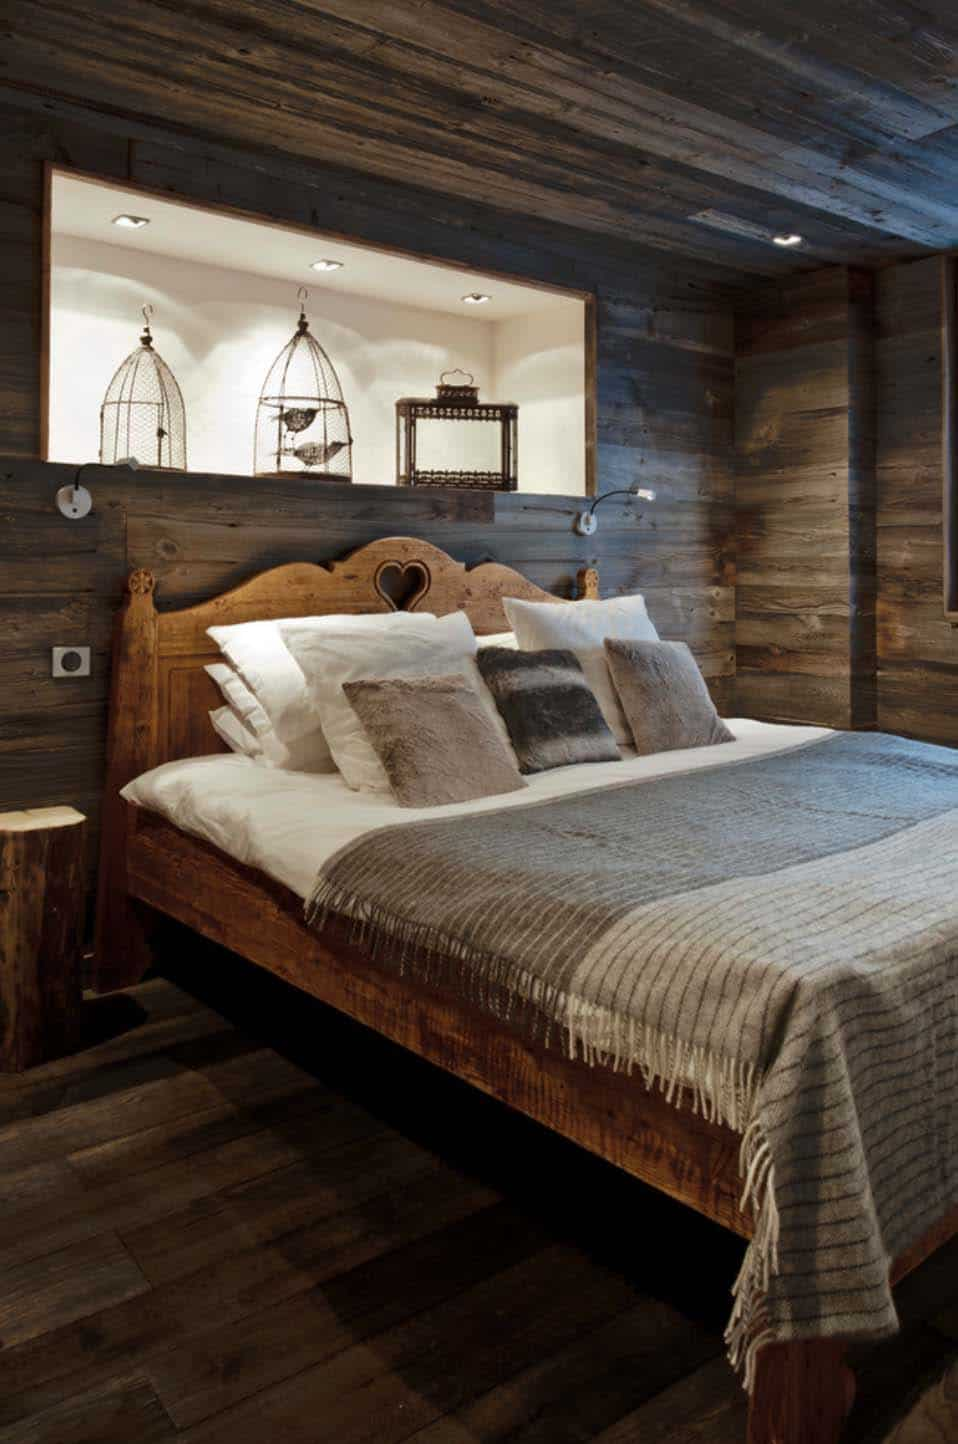 40 Amazing rustic bedrooms styled to feel like a cozy getaway